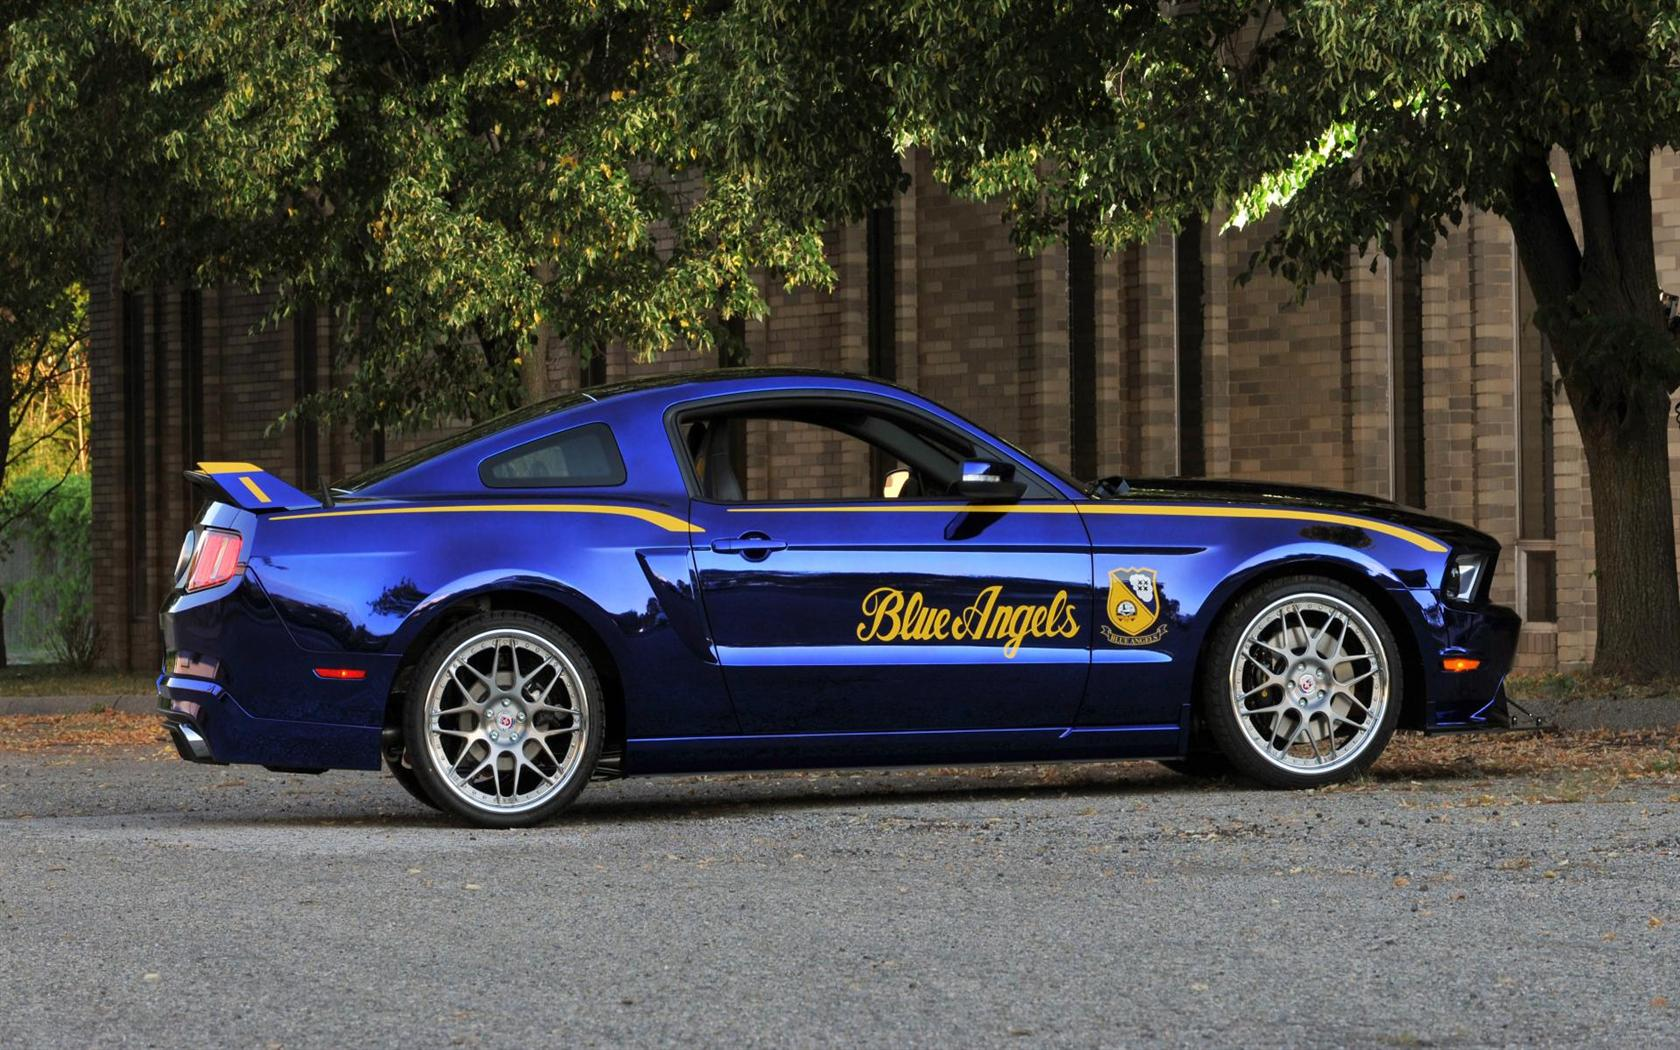 2012 ford mustang gt blue angels images photo 2012 ford. Black Bedroom Furniture Sets. Home Design Ideas